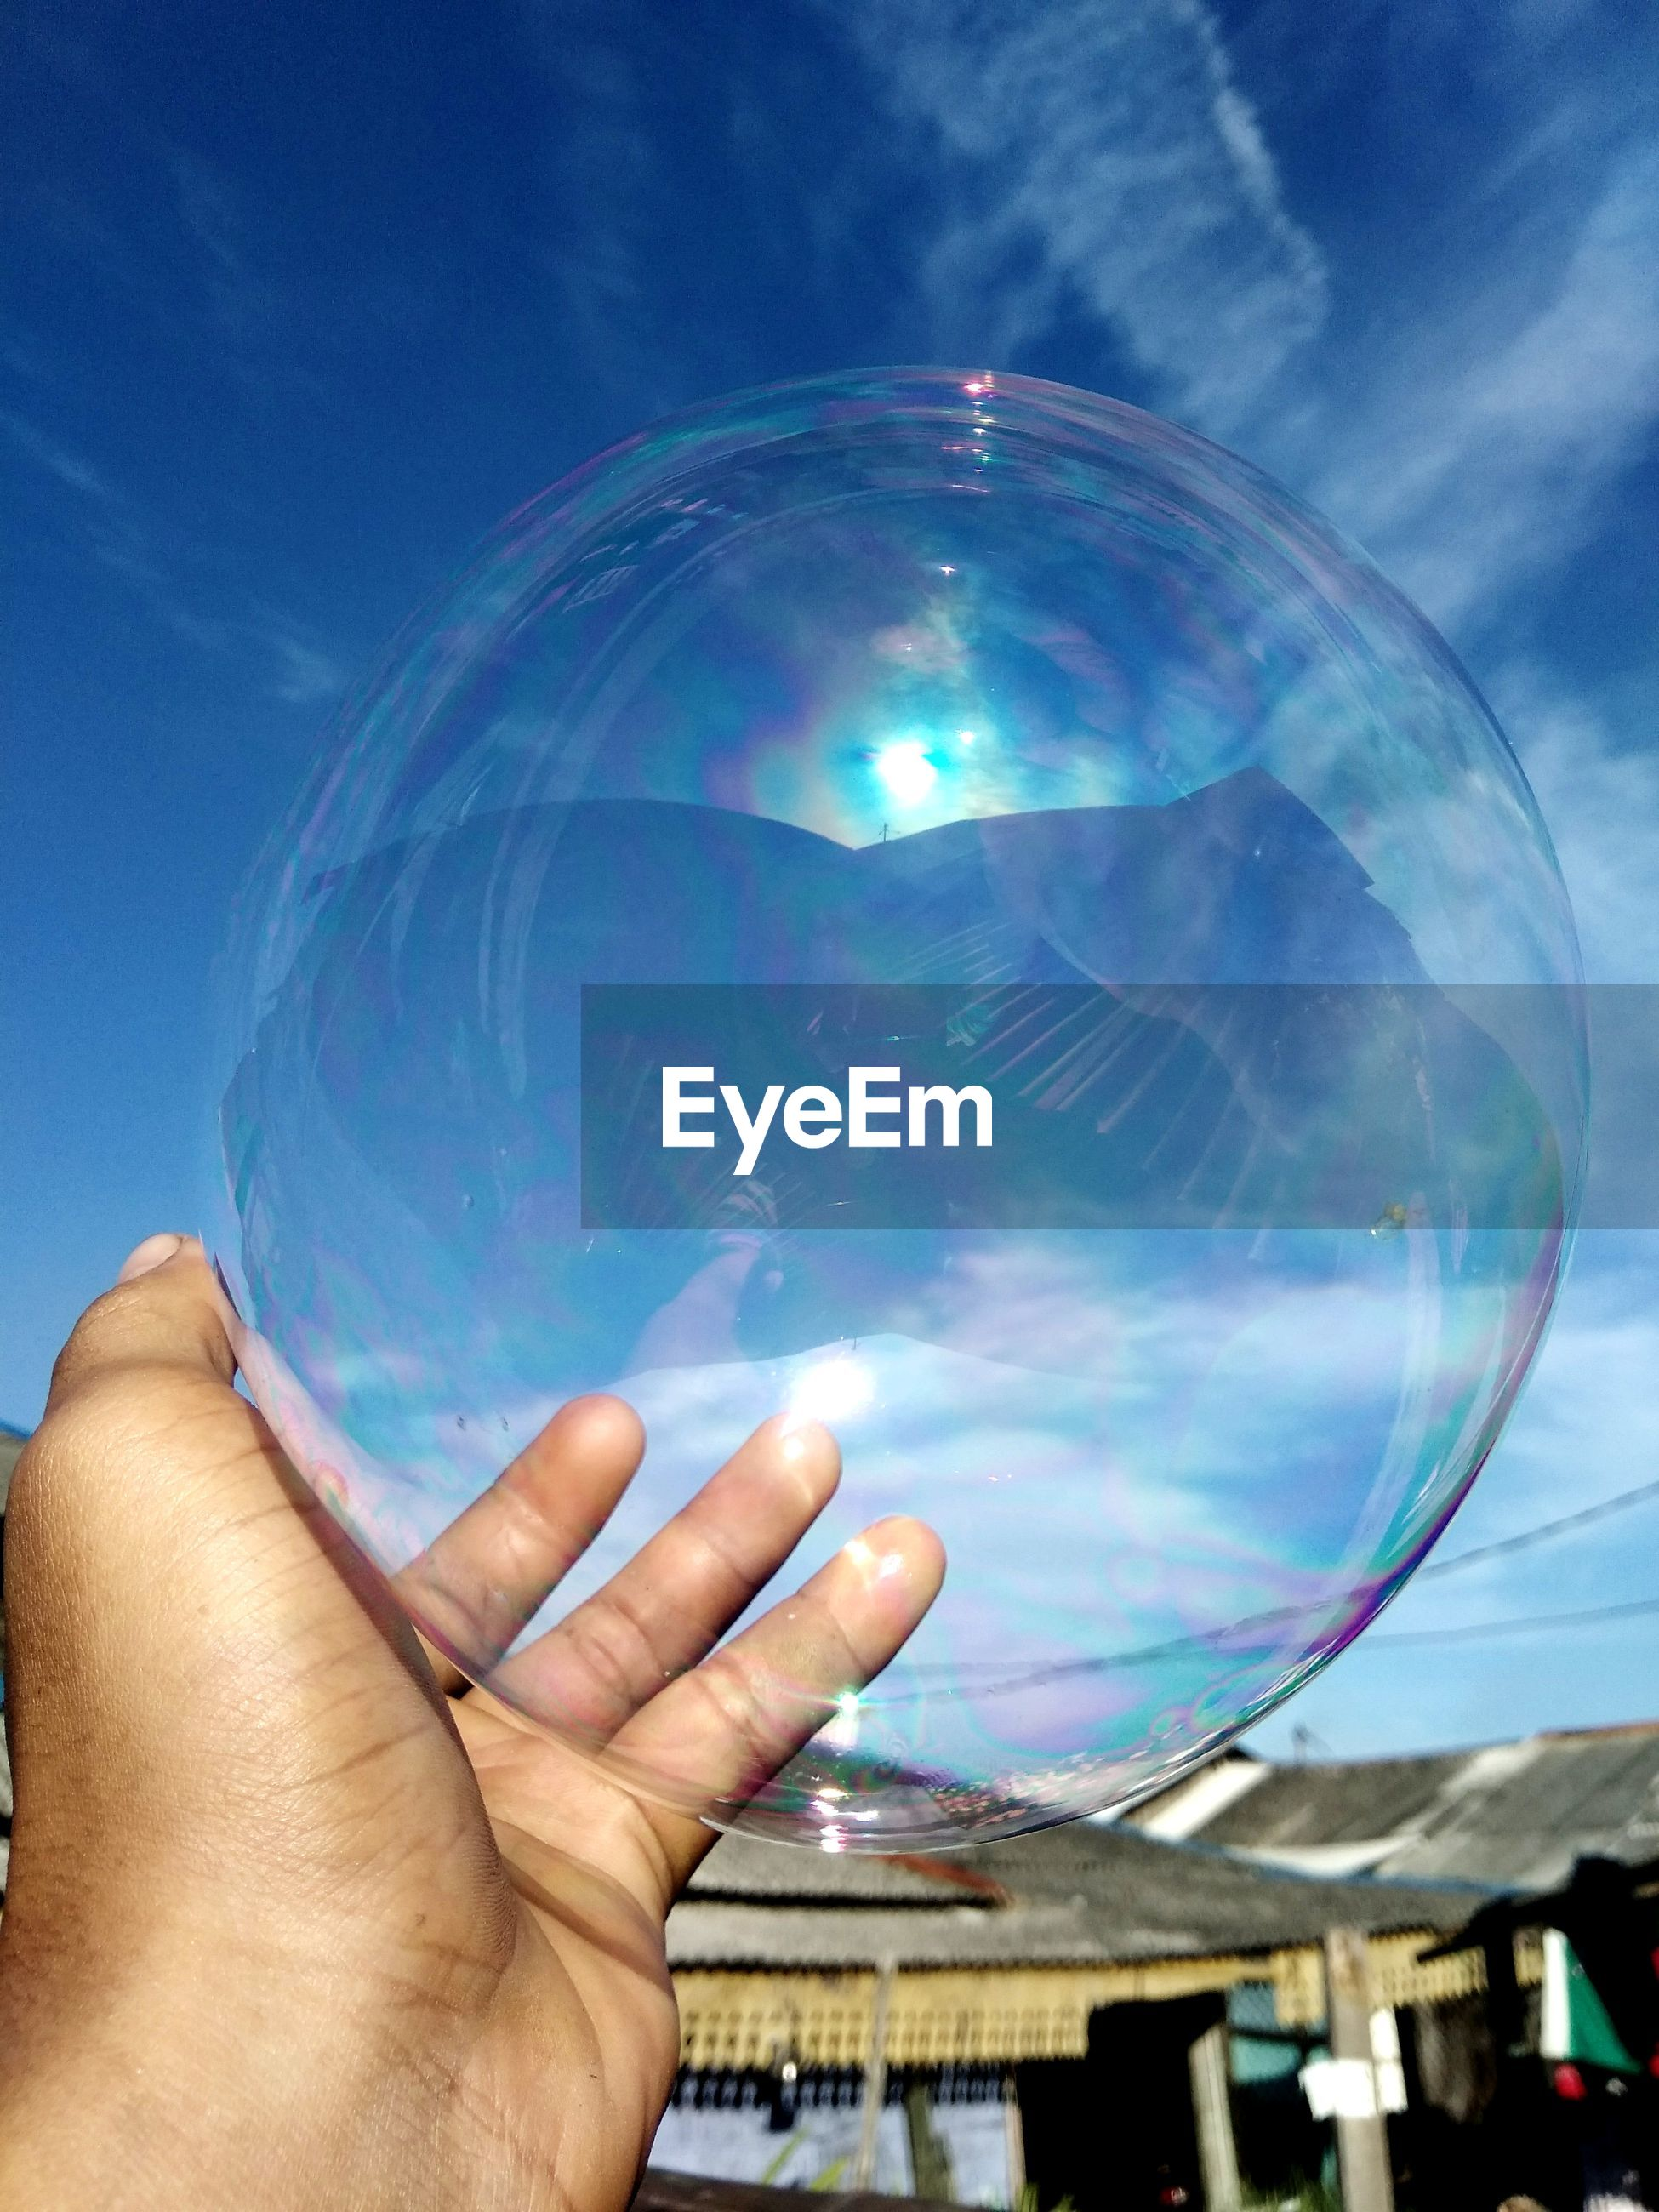 Cropped image of person hand holding bubble against sky